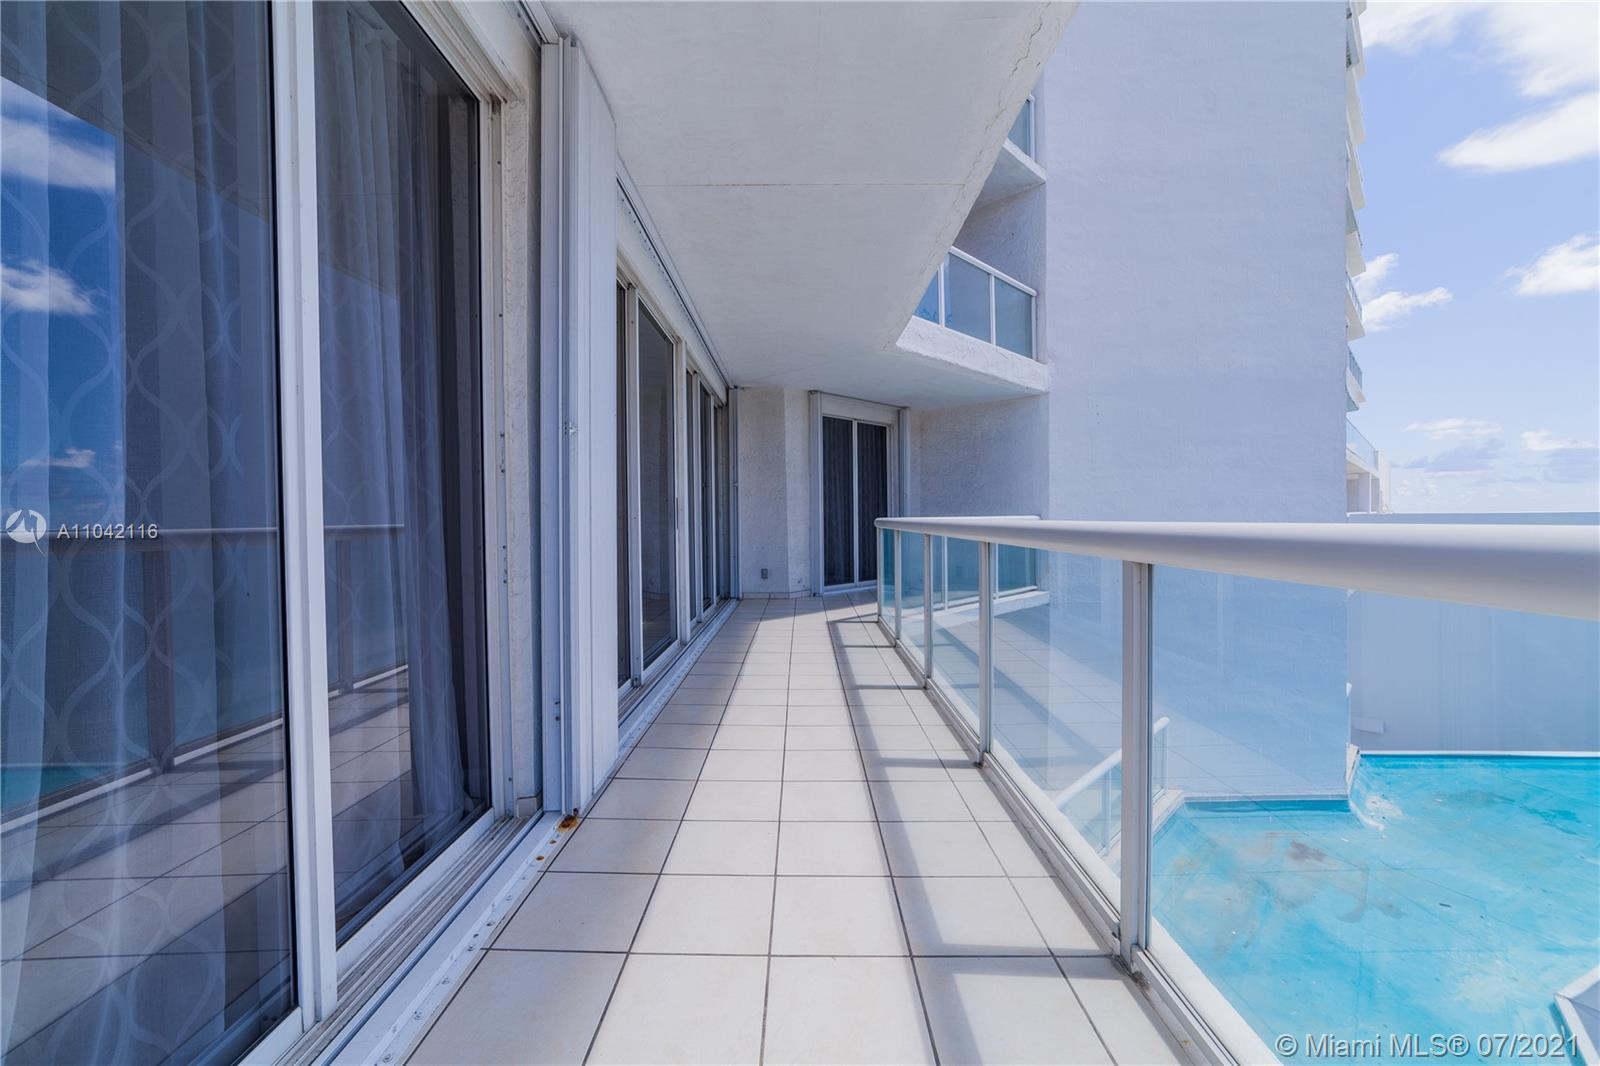 VERY NICE 2 BEDROOM AND DEN CONDO RIGHT ON THE OCEAN, INTRACOASTAL AND OCEAN VIEWS, VERY SPACIOUS. G